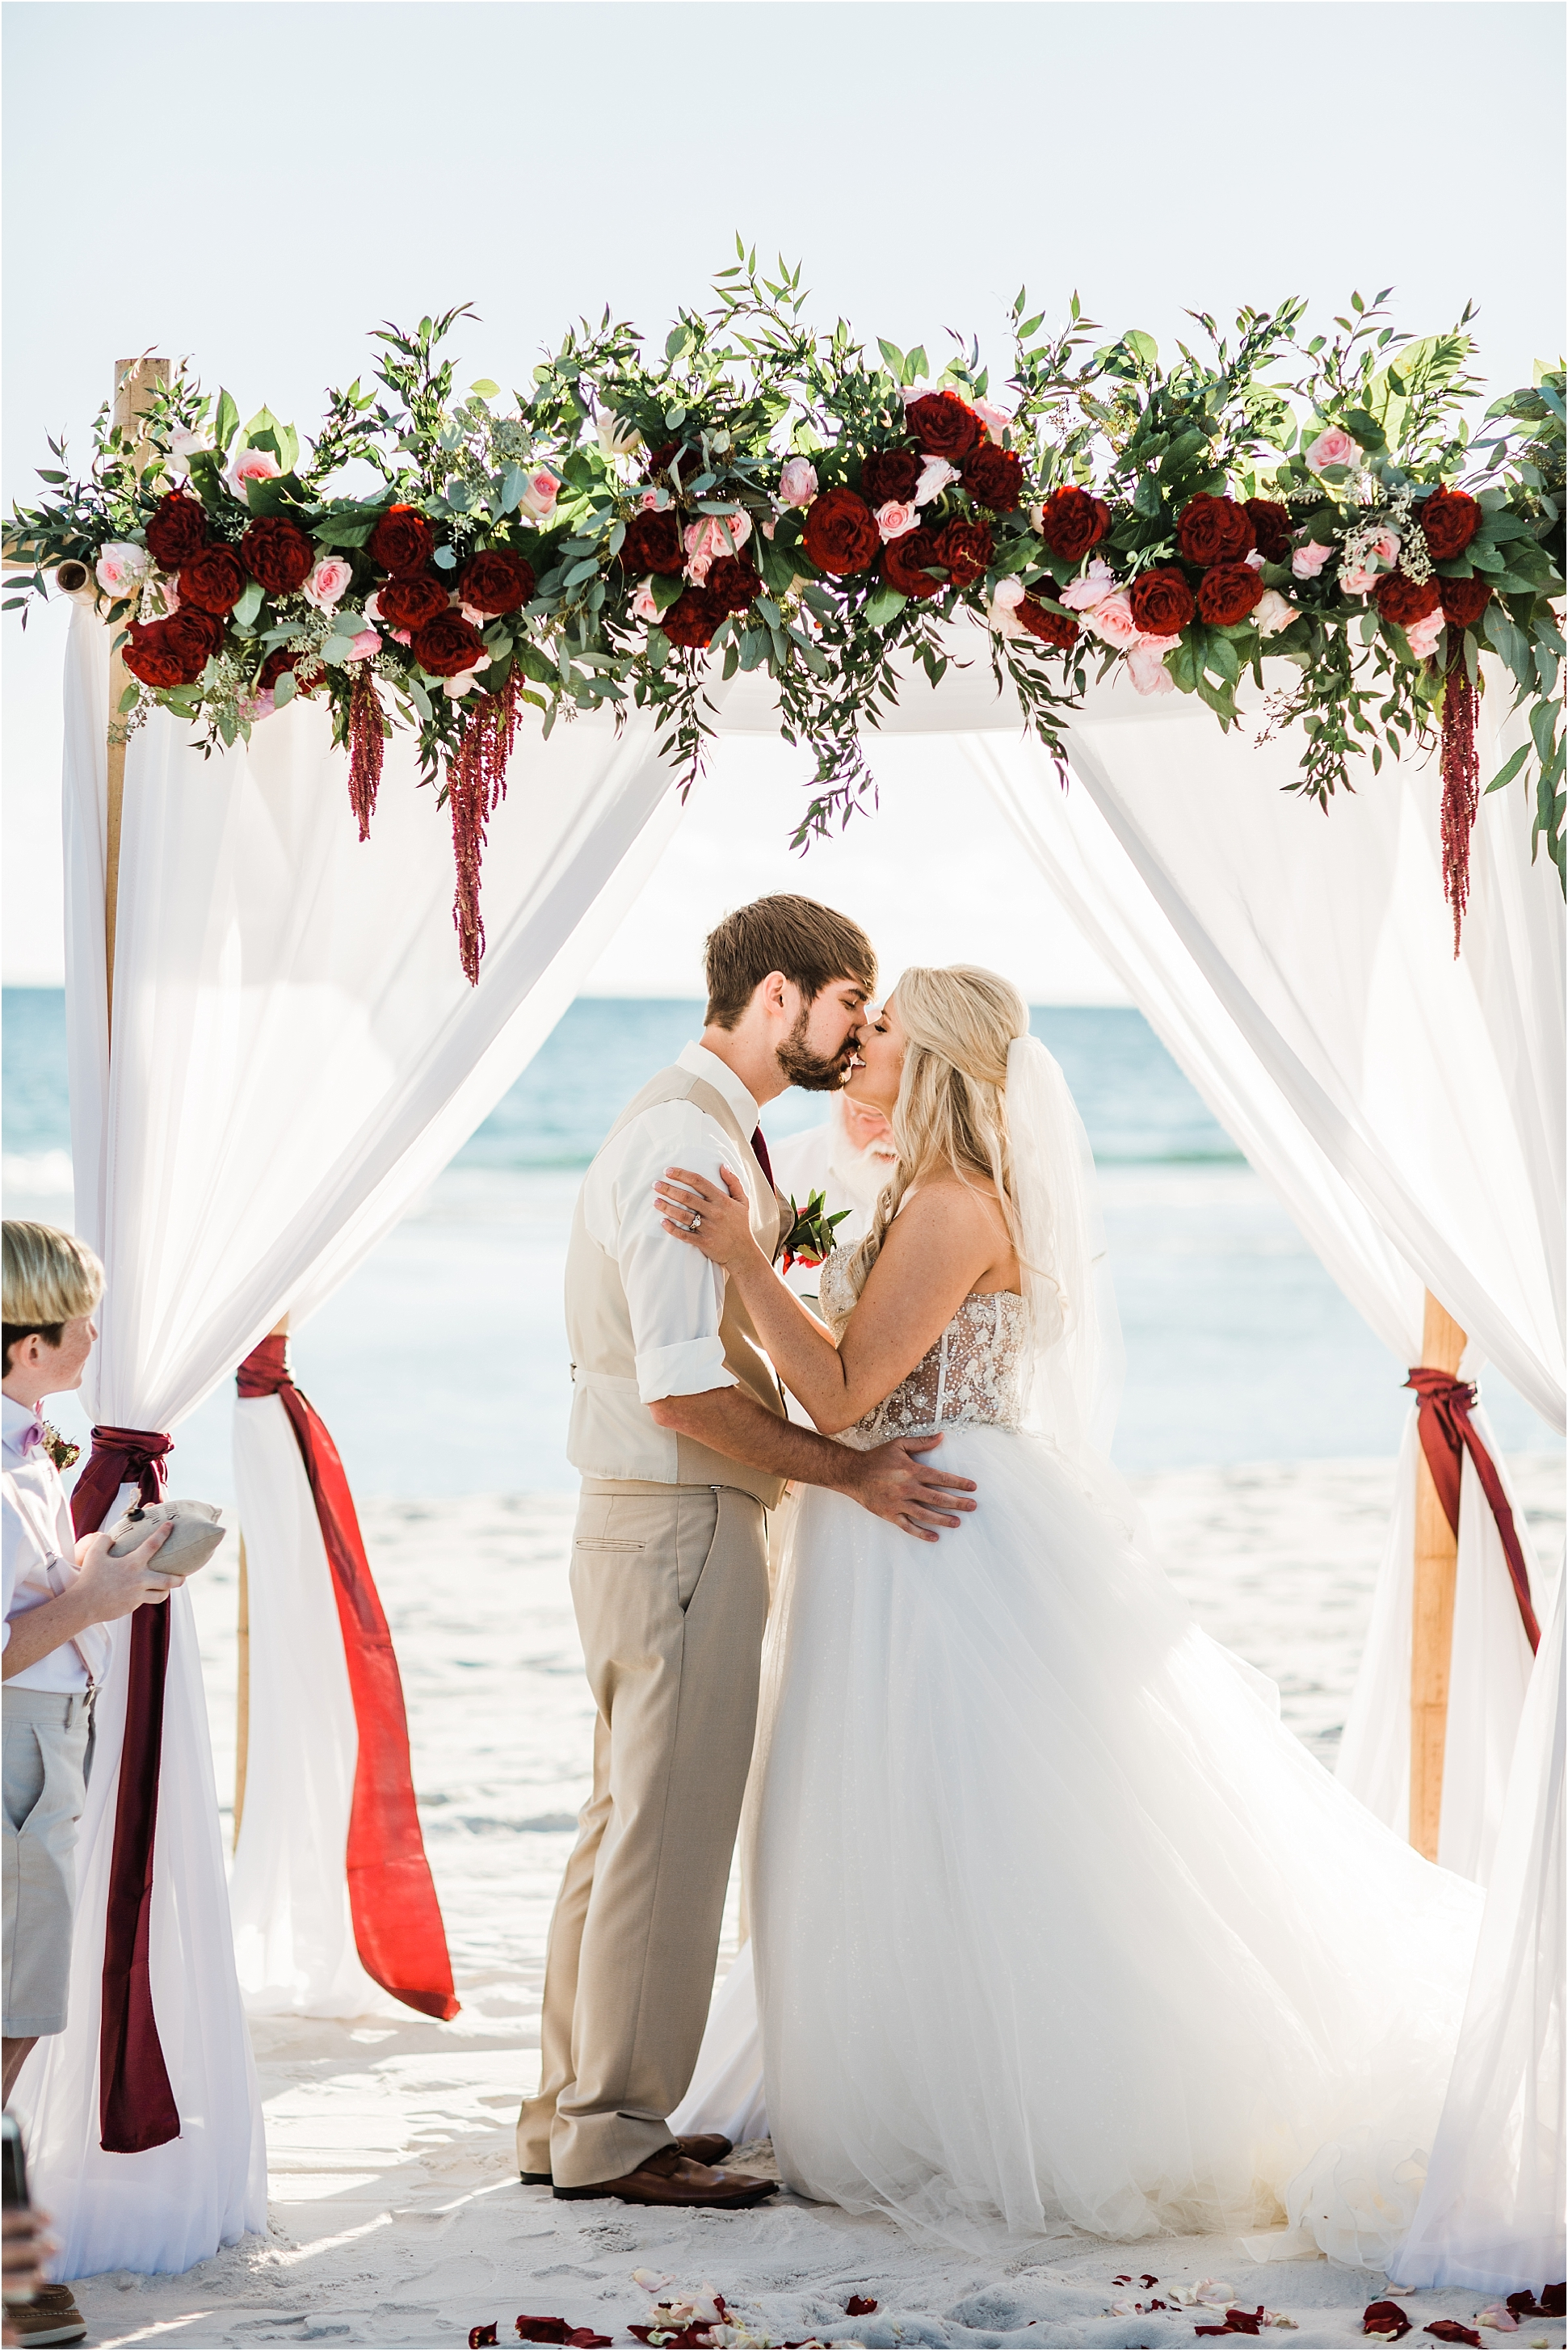 Share Your First Kiss On The Beach